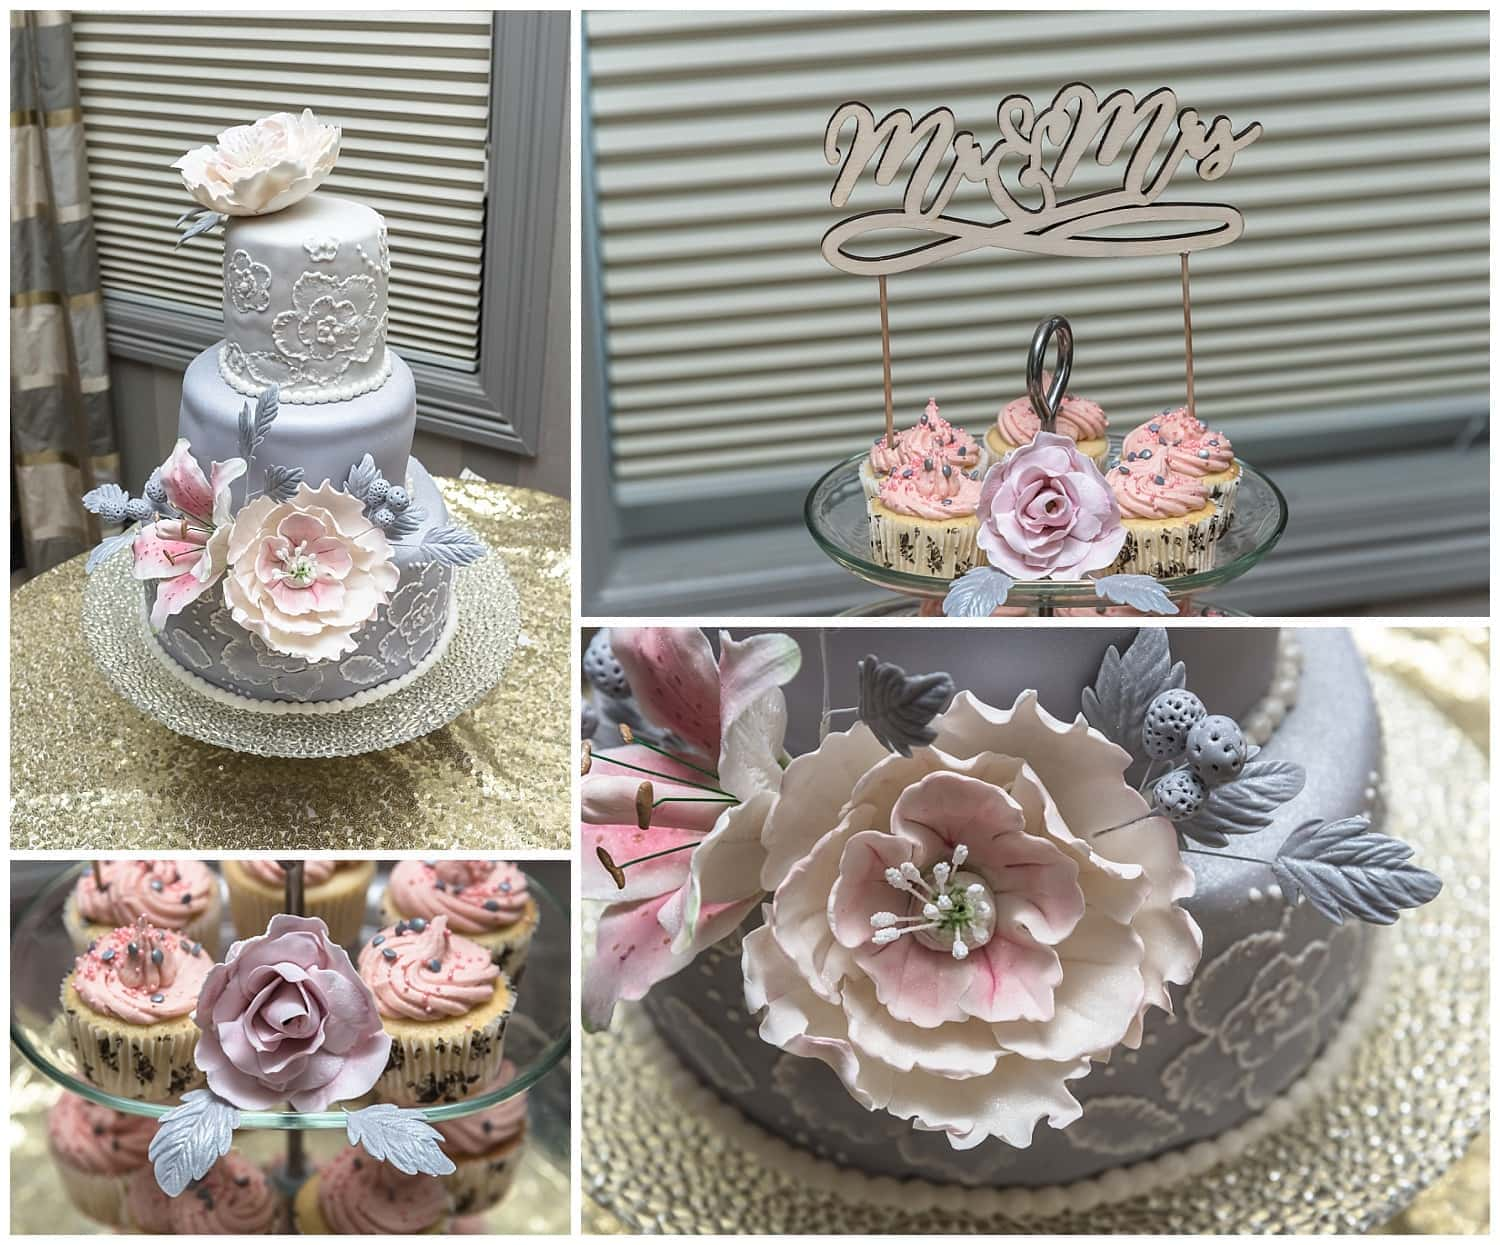 A beautifully stunning wedding cake with fondant flowers.